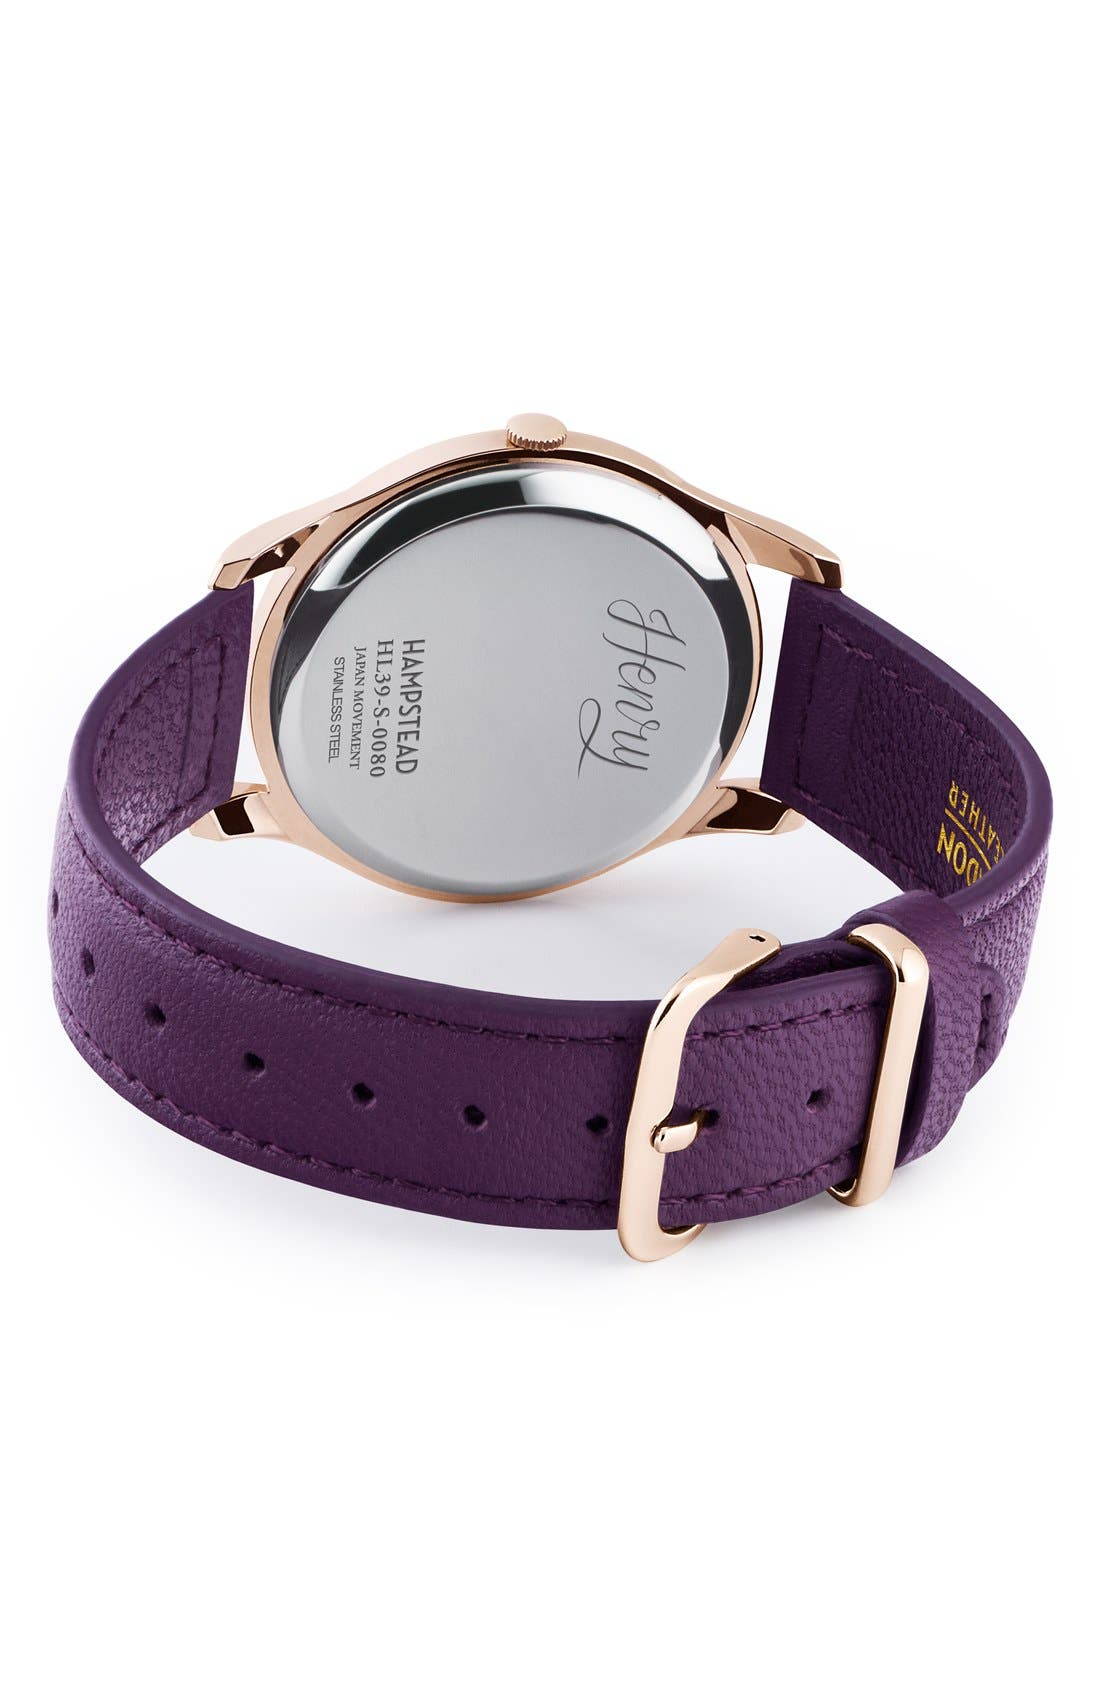 'Hampstead' Leather Strap Watch, 39mm,                             Alternate thumbnail 3, color,                             930